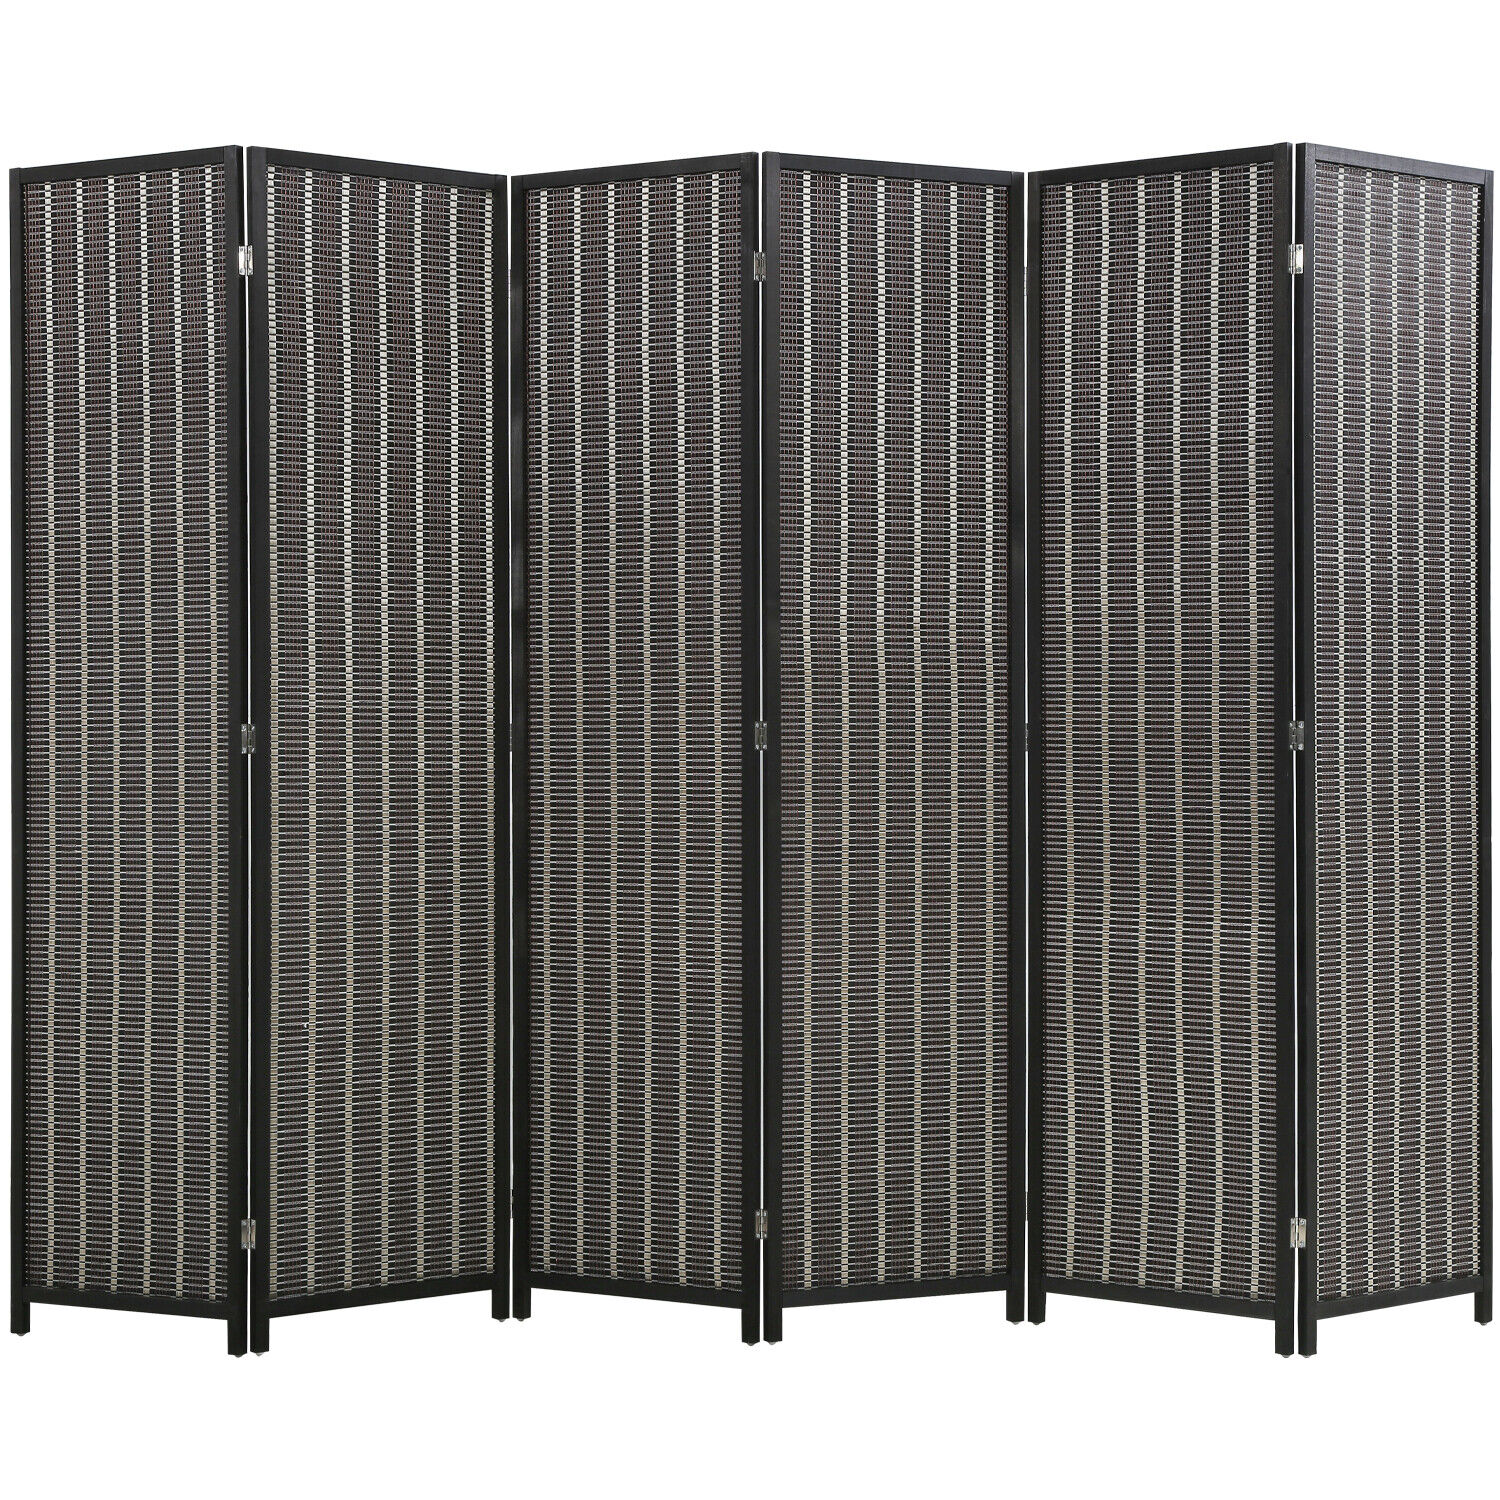 6 panel 72 inch room divider bamboo